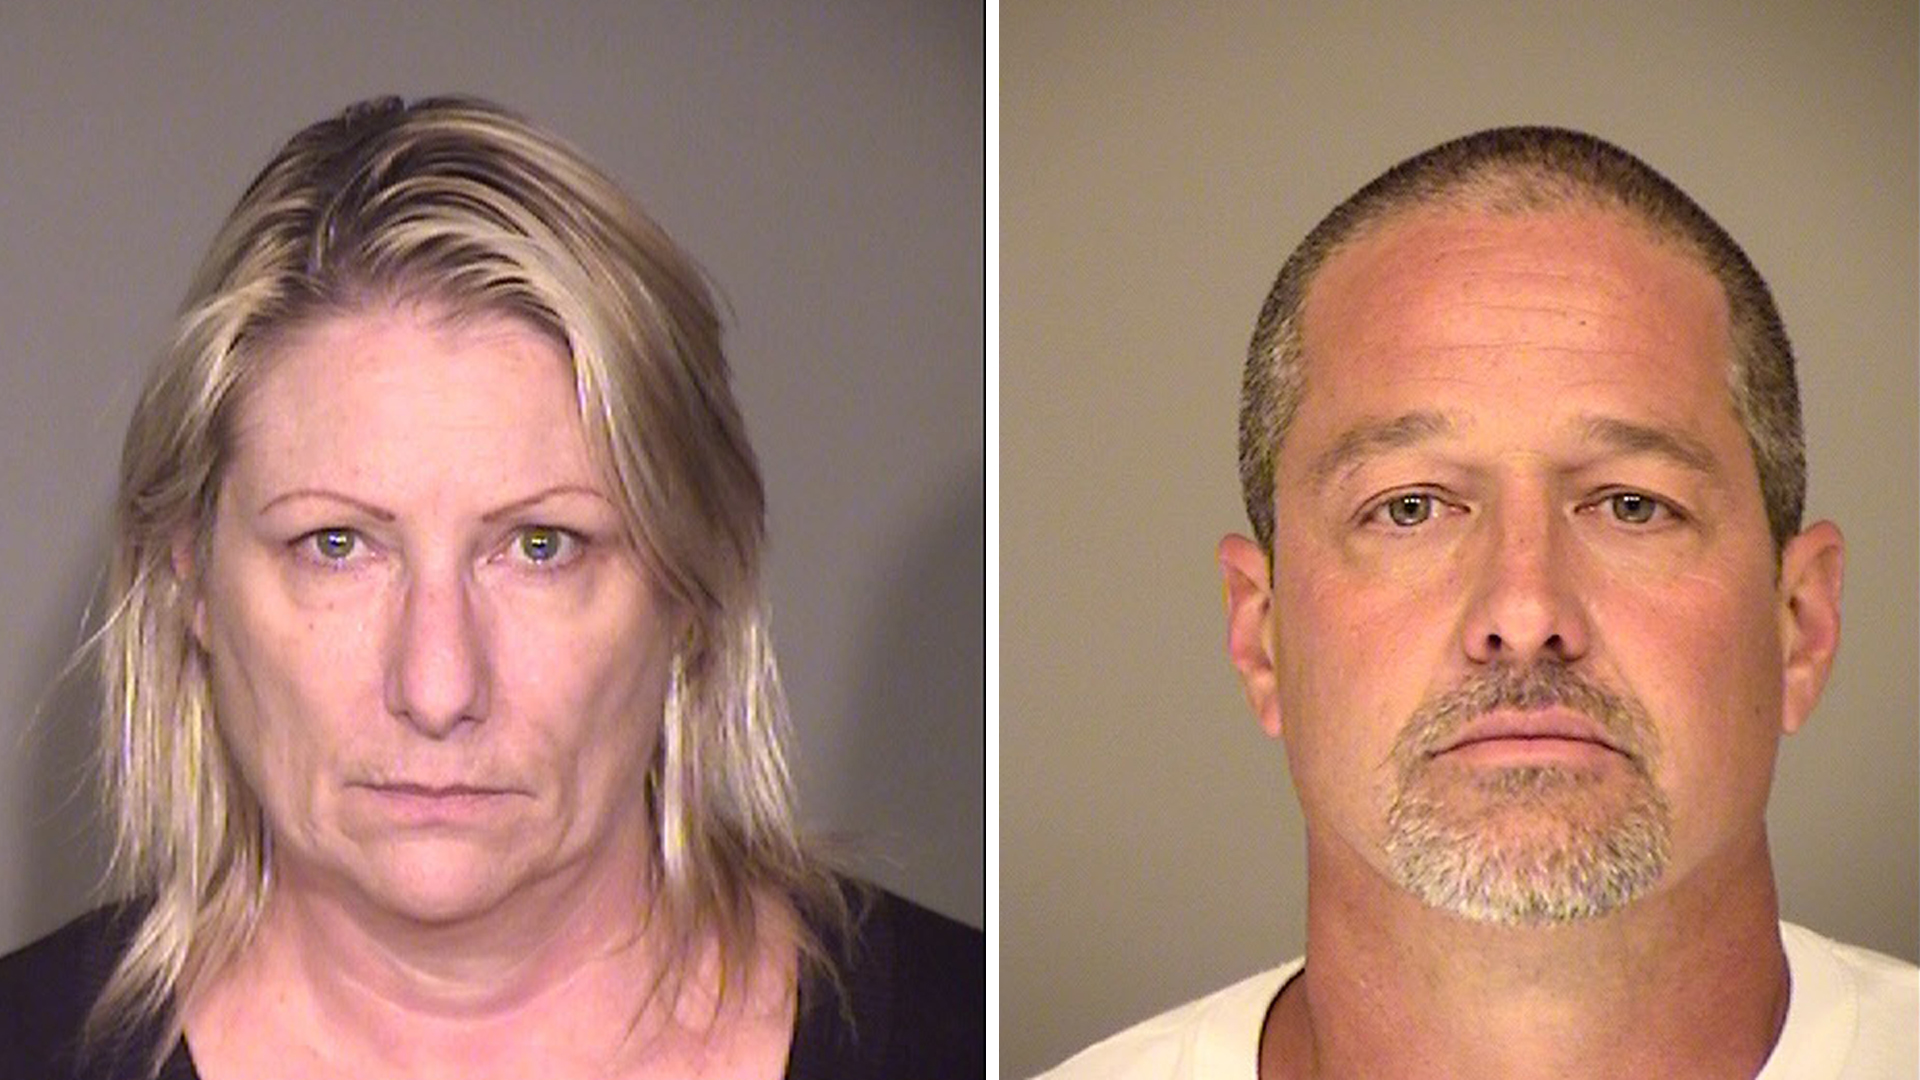 Idee Scholz (left) and Glenn Sires (right) appear in undated photos provided by the Simi Valley Police Department on Nov. 3, 2016.